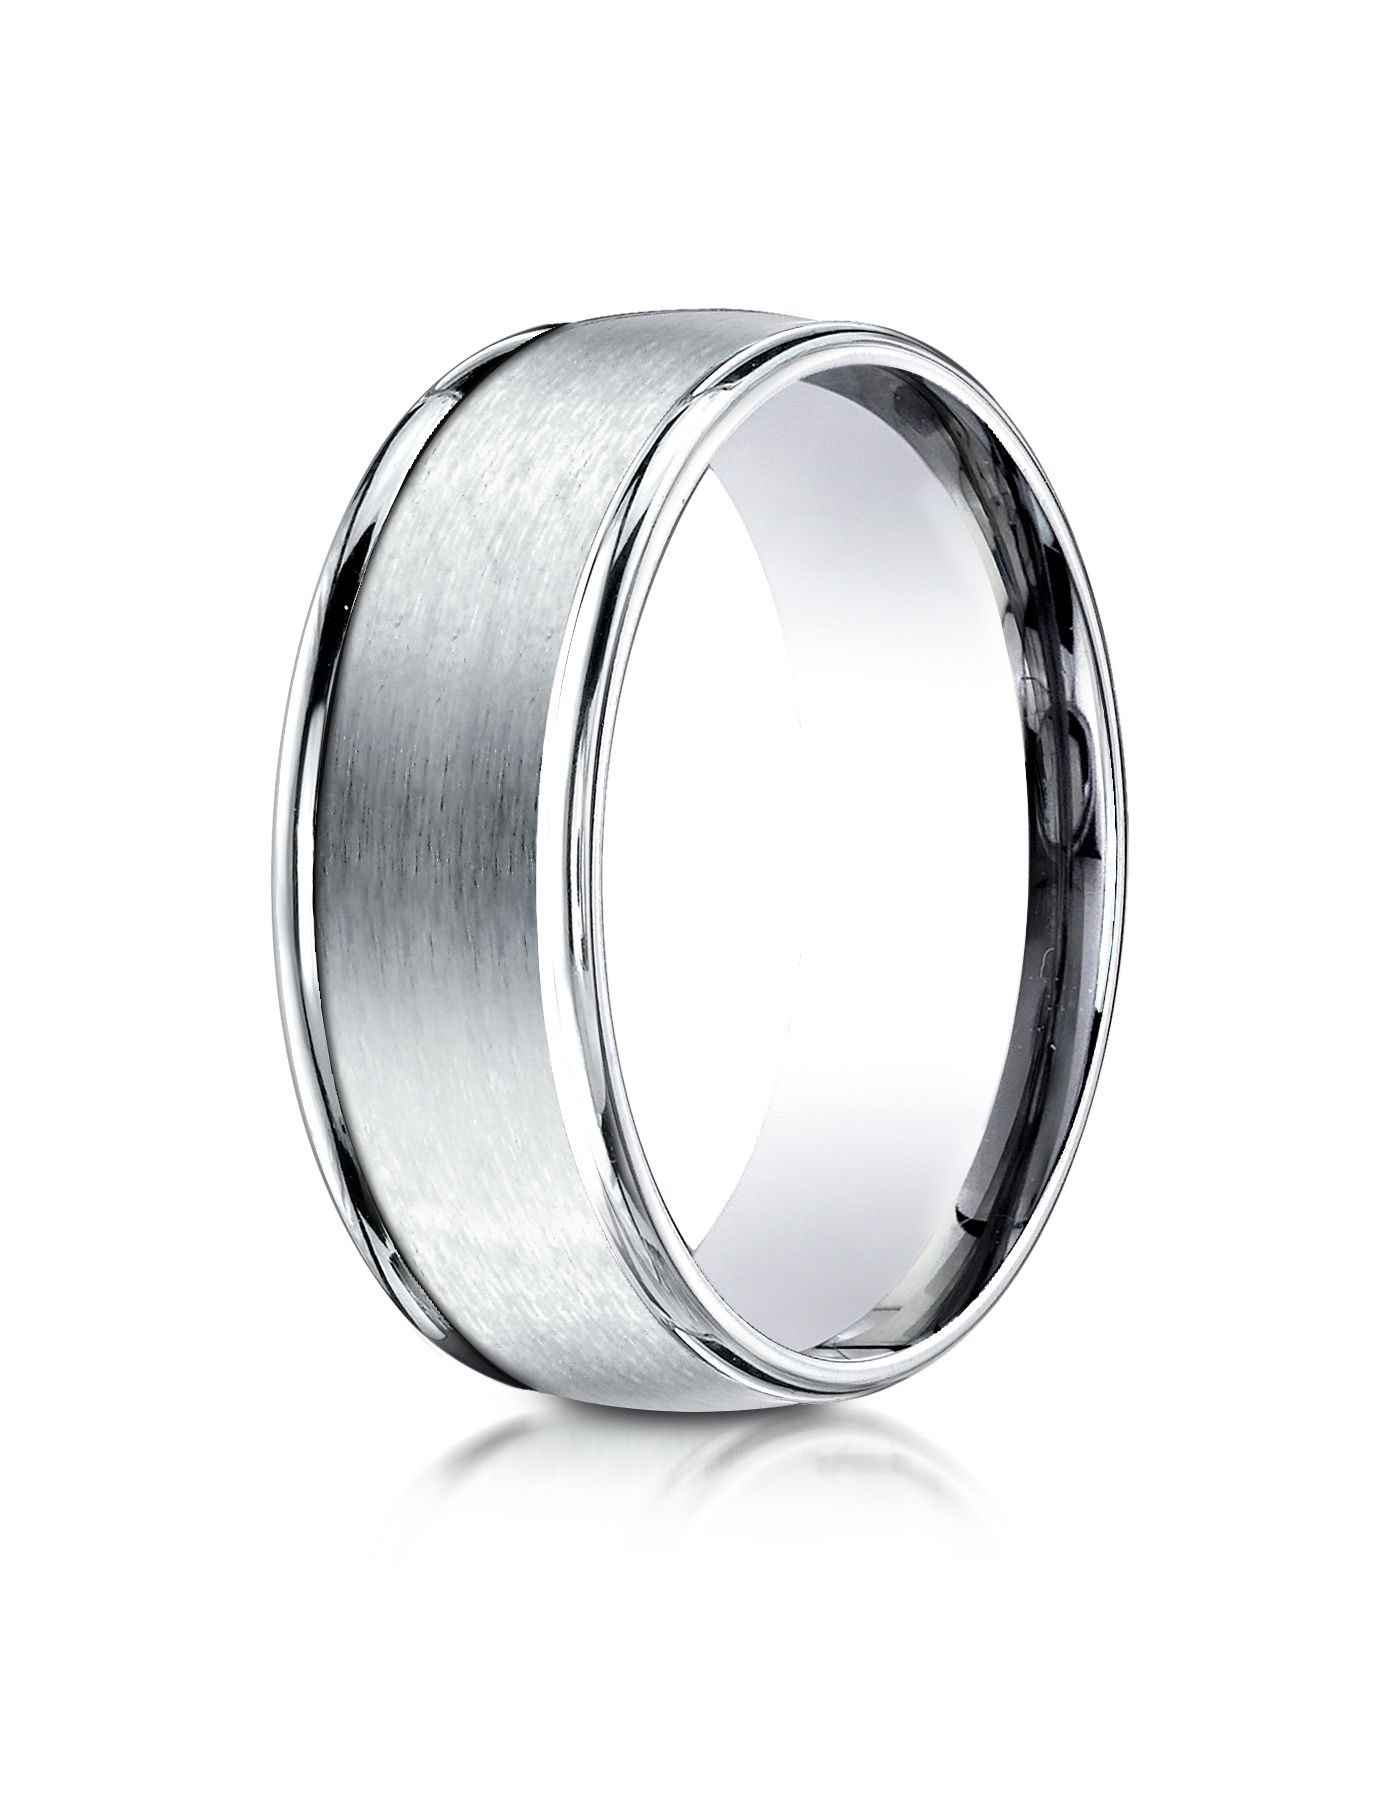 14k White Gold 8mm Comfort-Fit Satin Finish High Polished Round Edge Carved Design Band